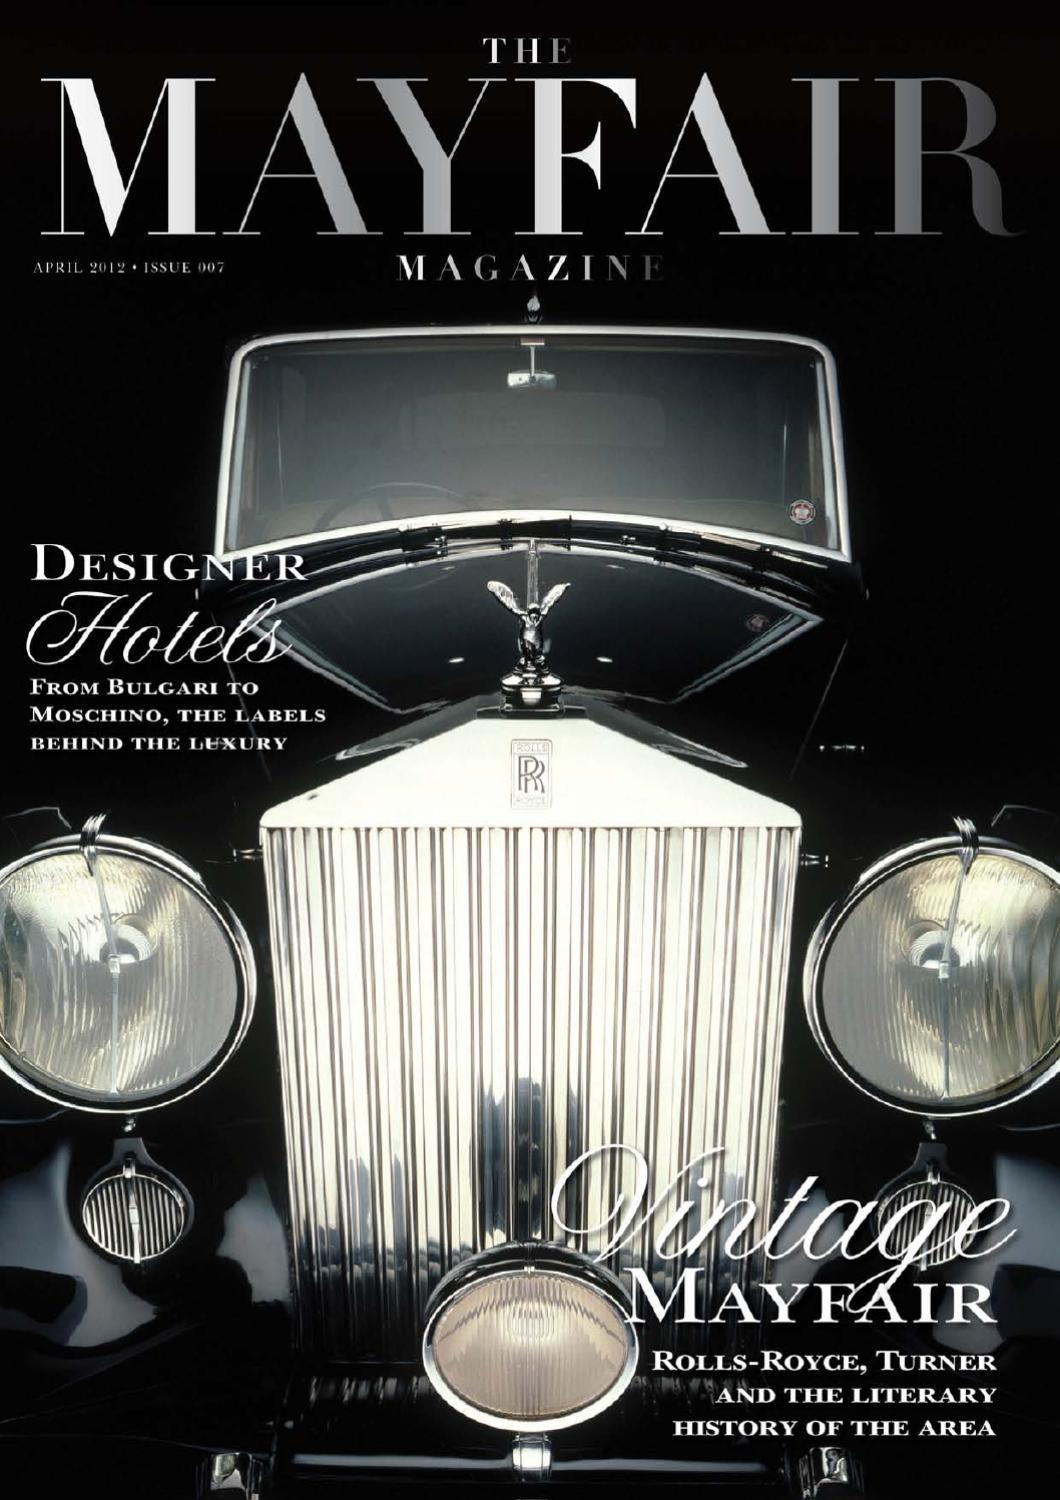 eb5f281c53a The Mayfair Magazine April 2012 by Runwild Media Group - issuu